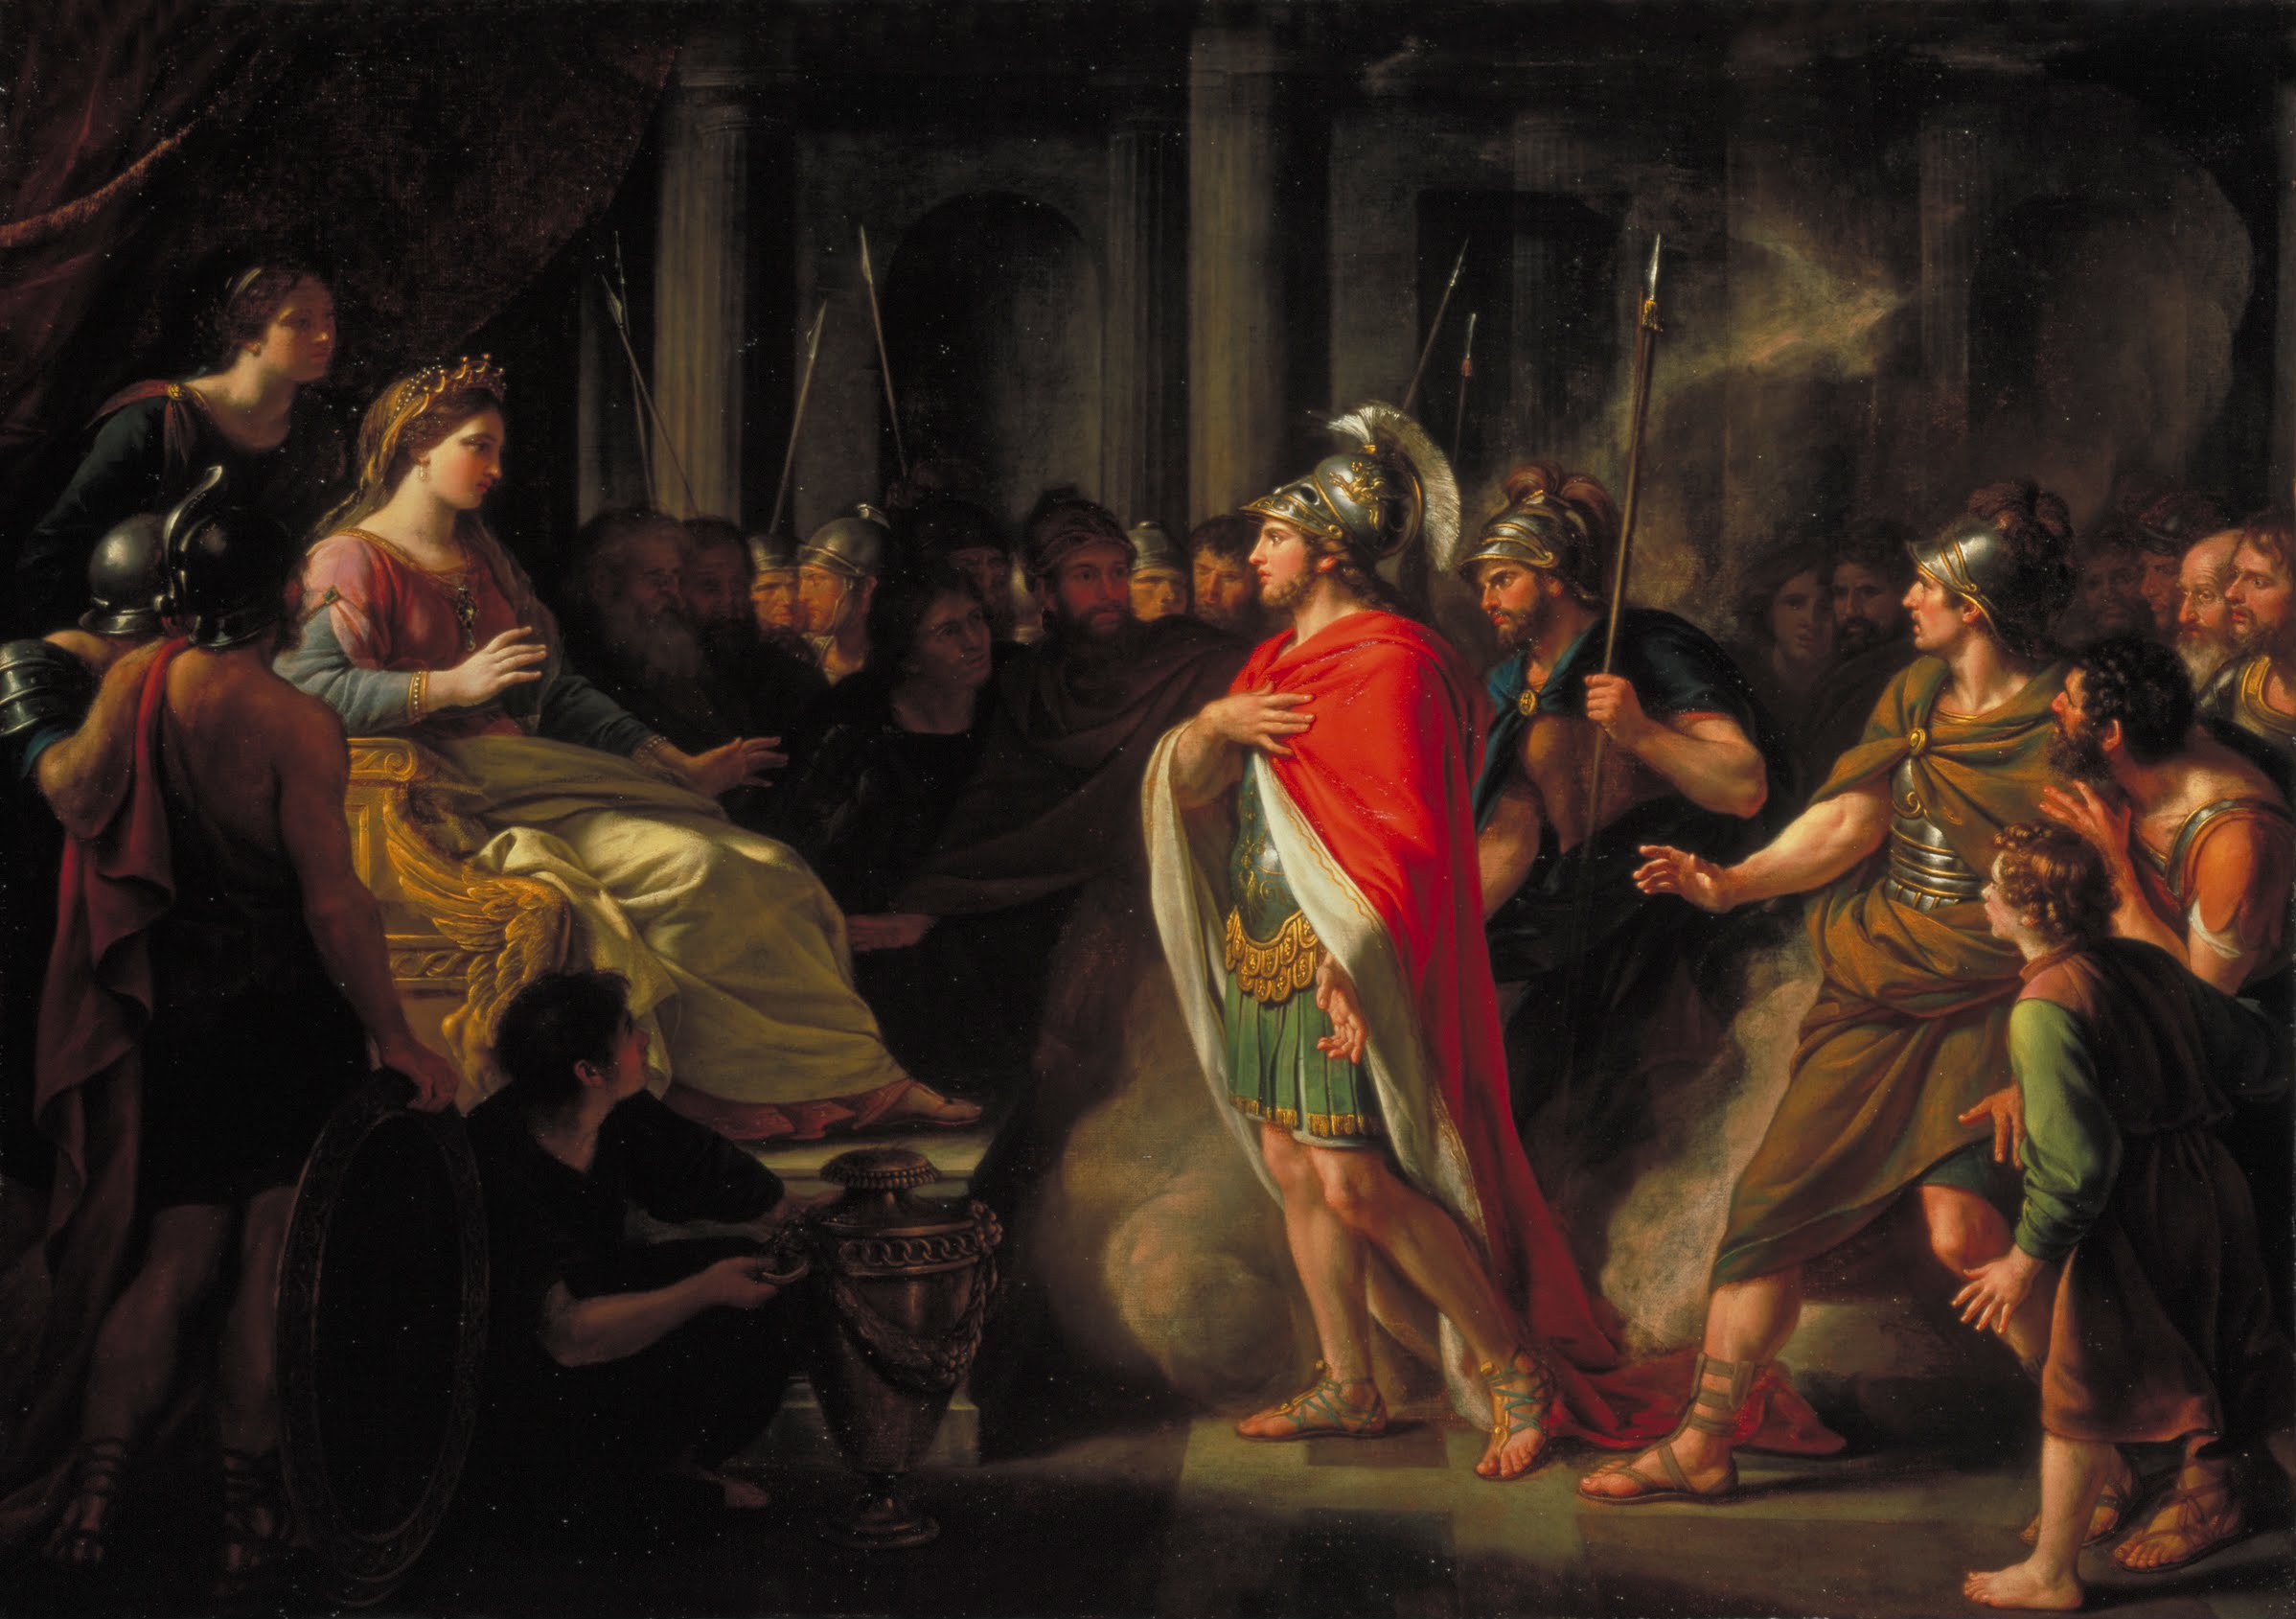 The Meeting of Dido and Aeneas, painted by Sir Nathaniel Dance-Holland. Queen Dido is seated on the left, and Aeneas is standing in a red cape.